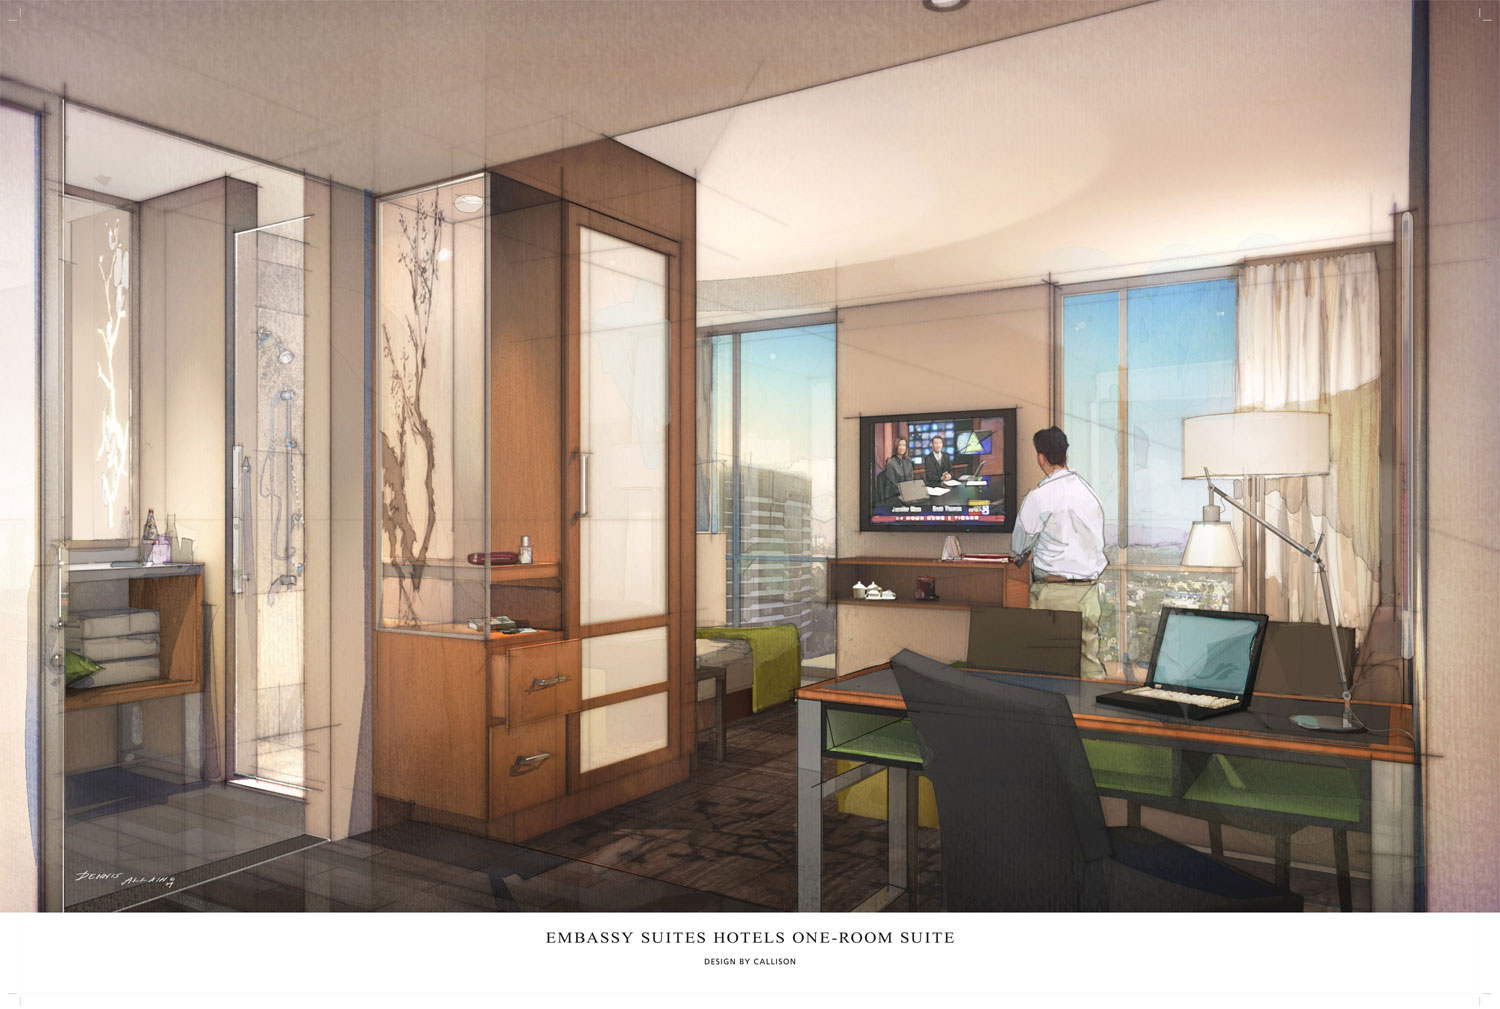 Embassy suites hotels introduces spacious one room suite for Hotel concept